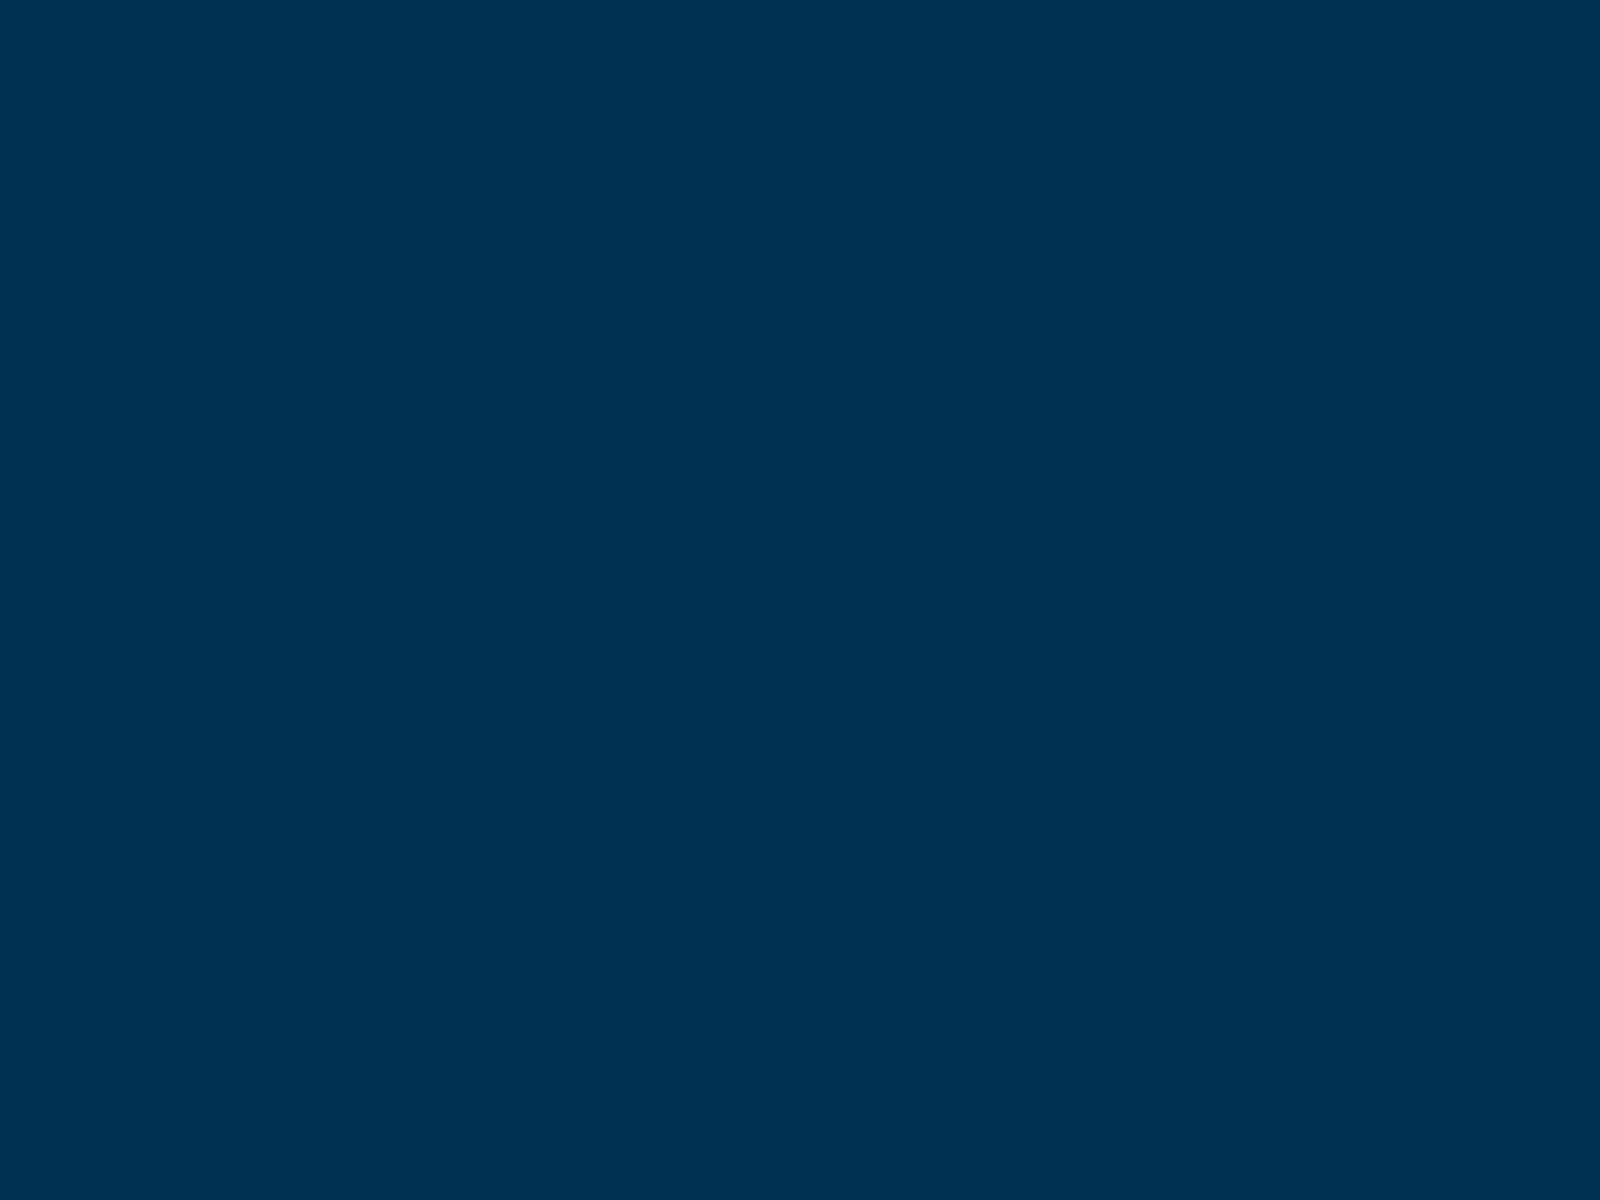 1600x1200 Prussian Blue Solid Color Background